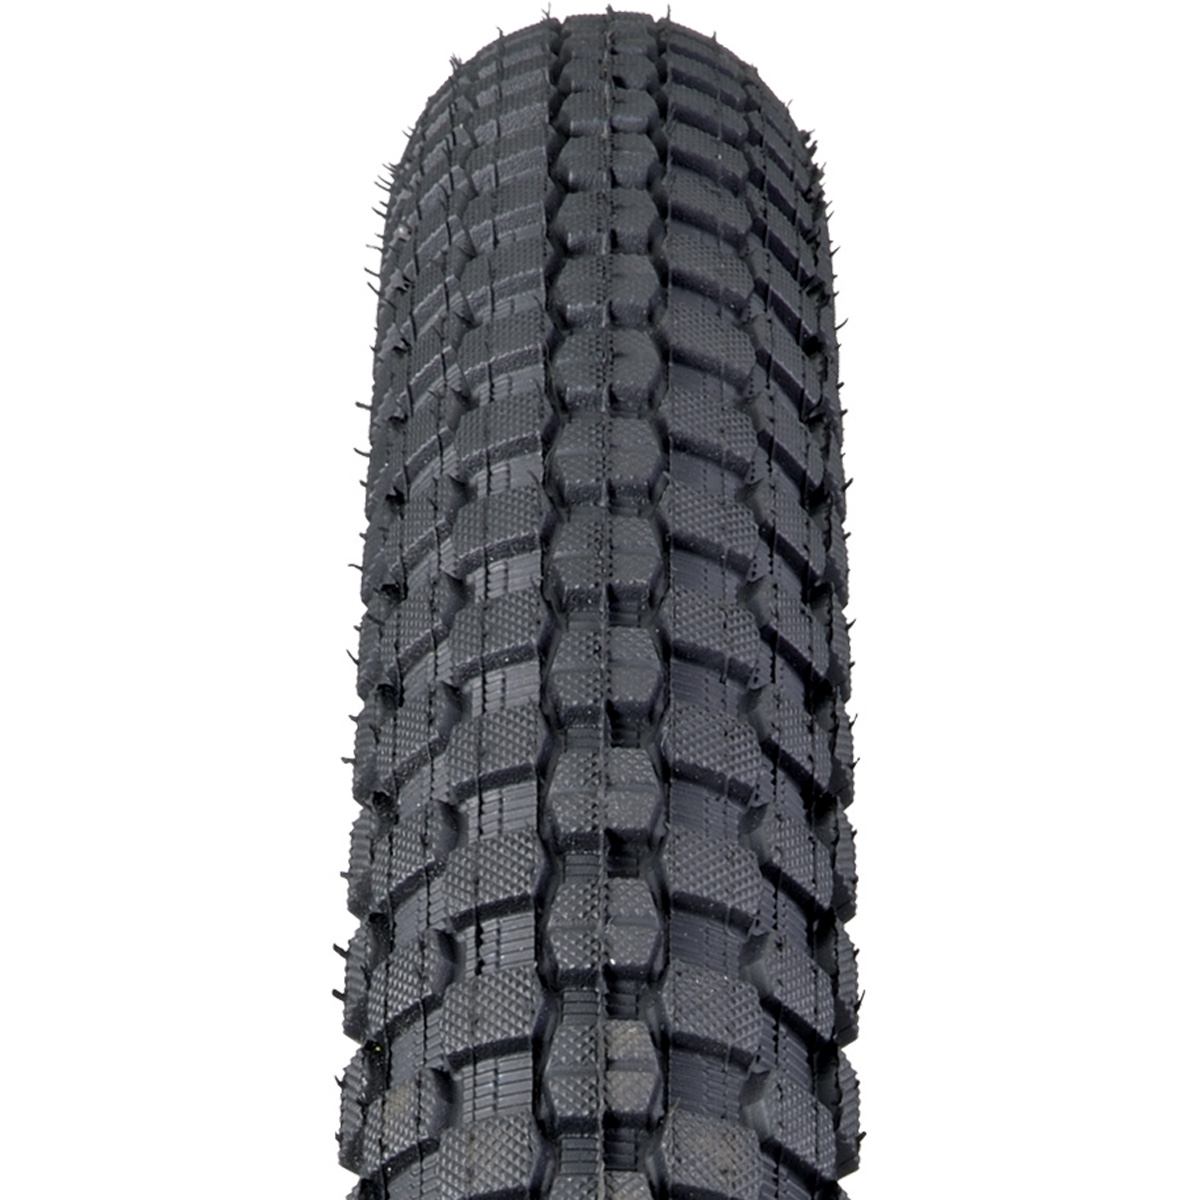 Kenda K-Rad K905 Wire Bead Mountain Bicycle Tire - 26 x 2.3